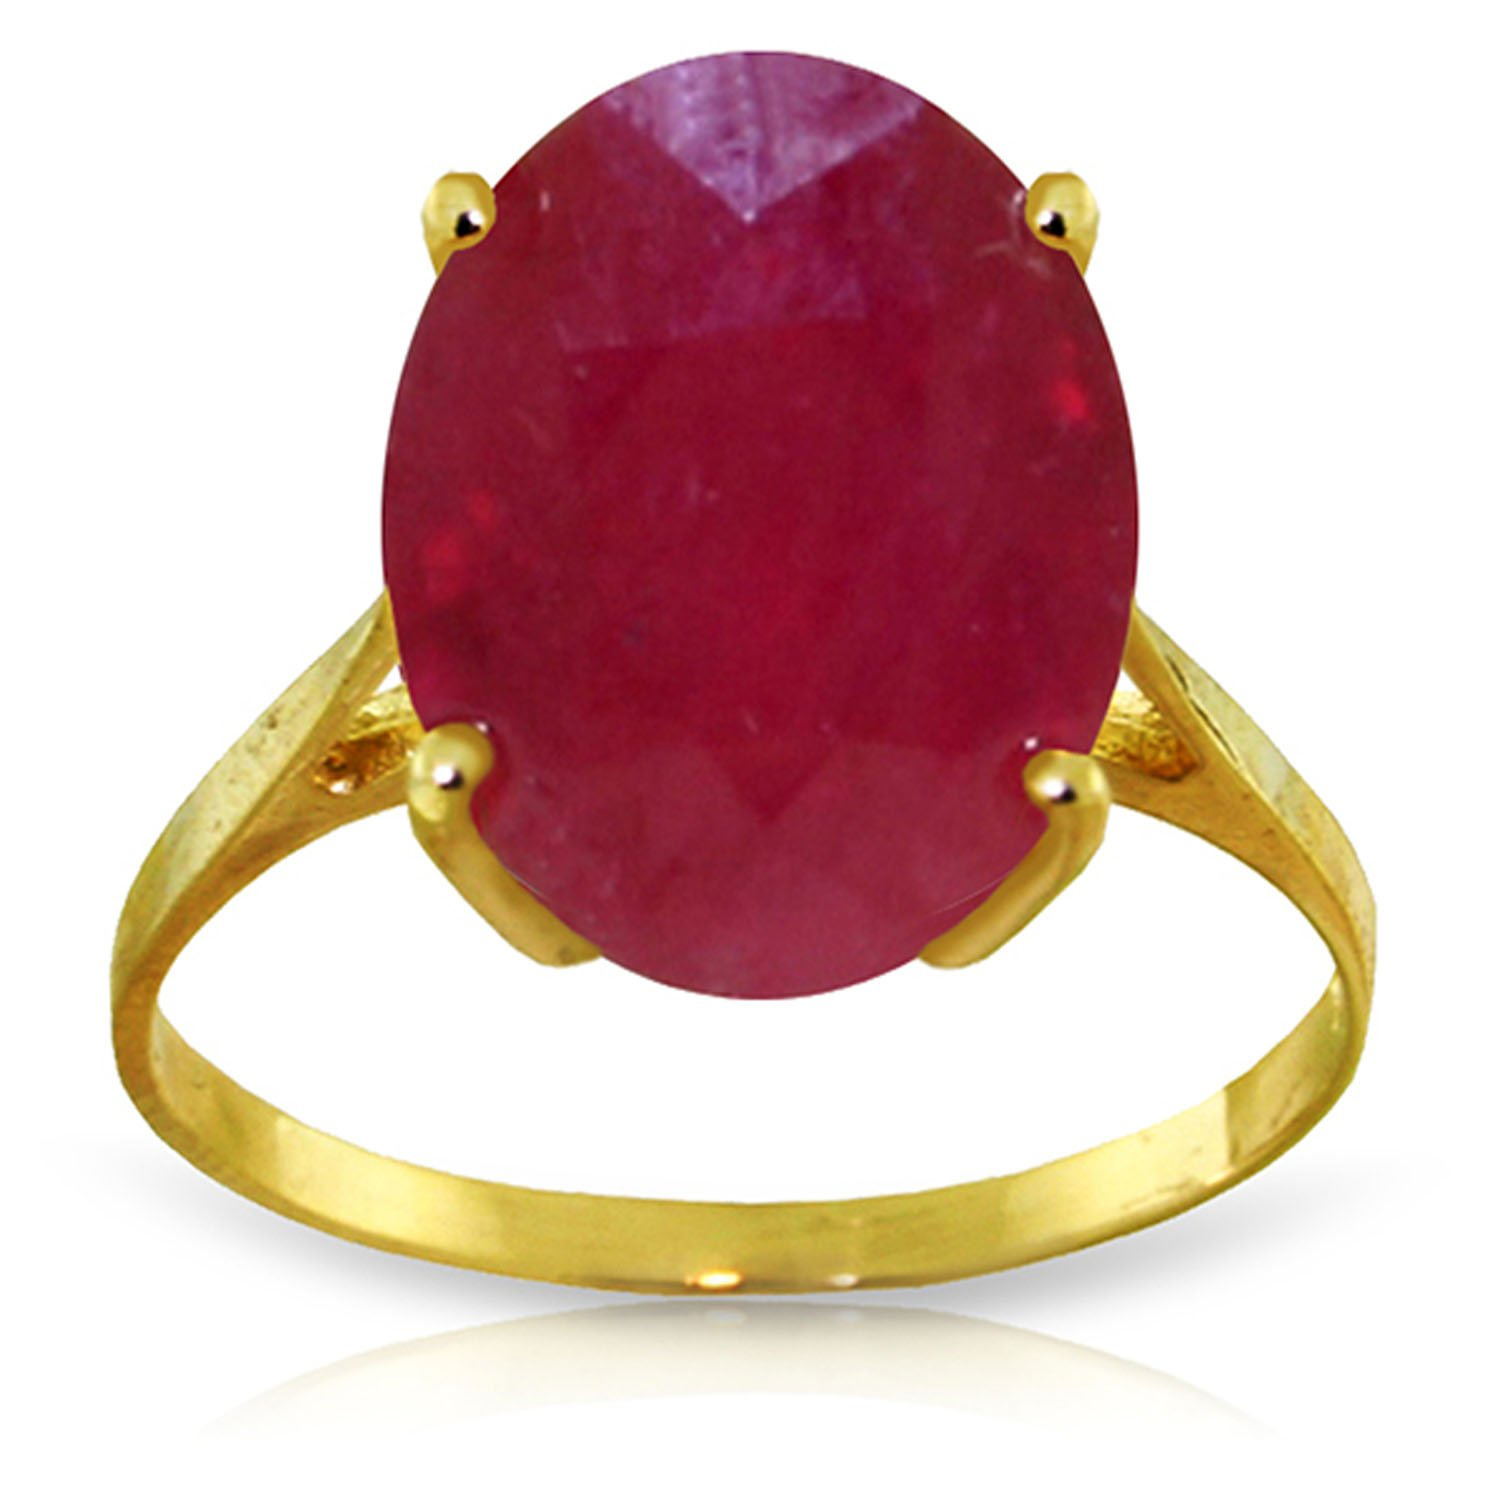 7.5 Carat 14k Solid Gold Ring with Natural Oval-shaped Ruby - Size 7.5